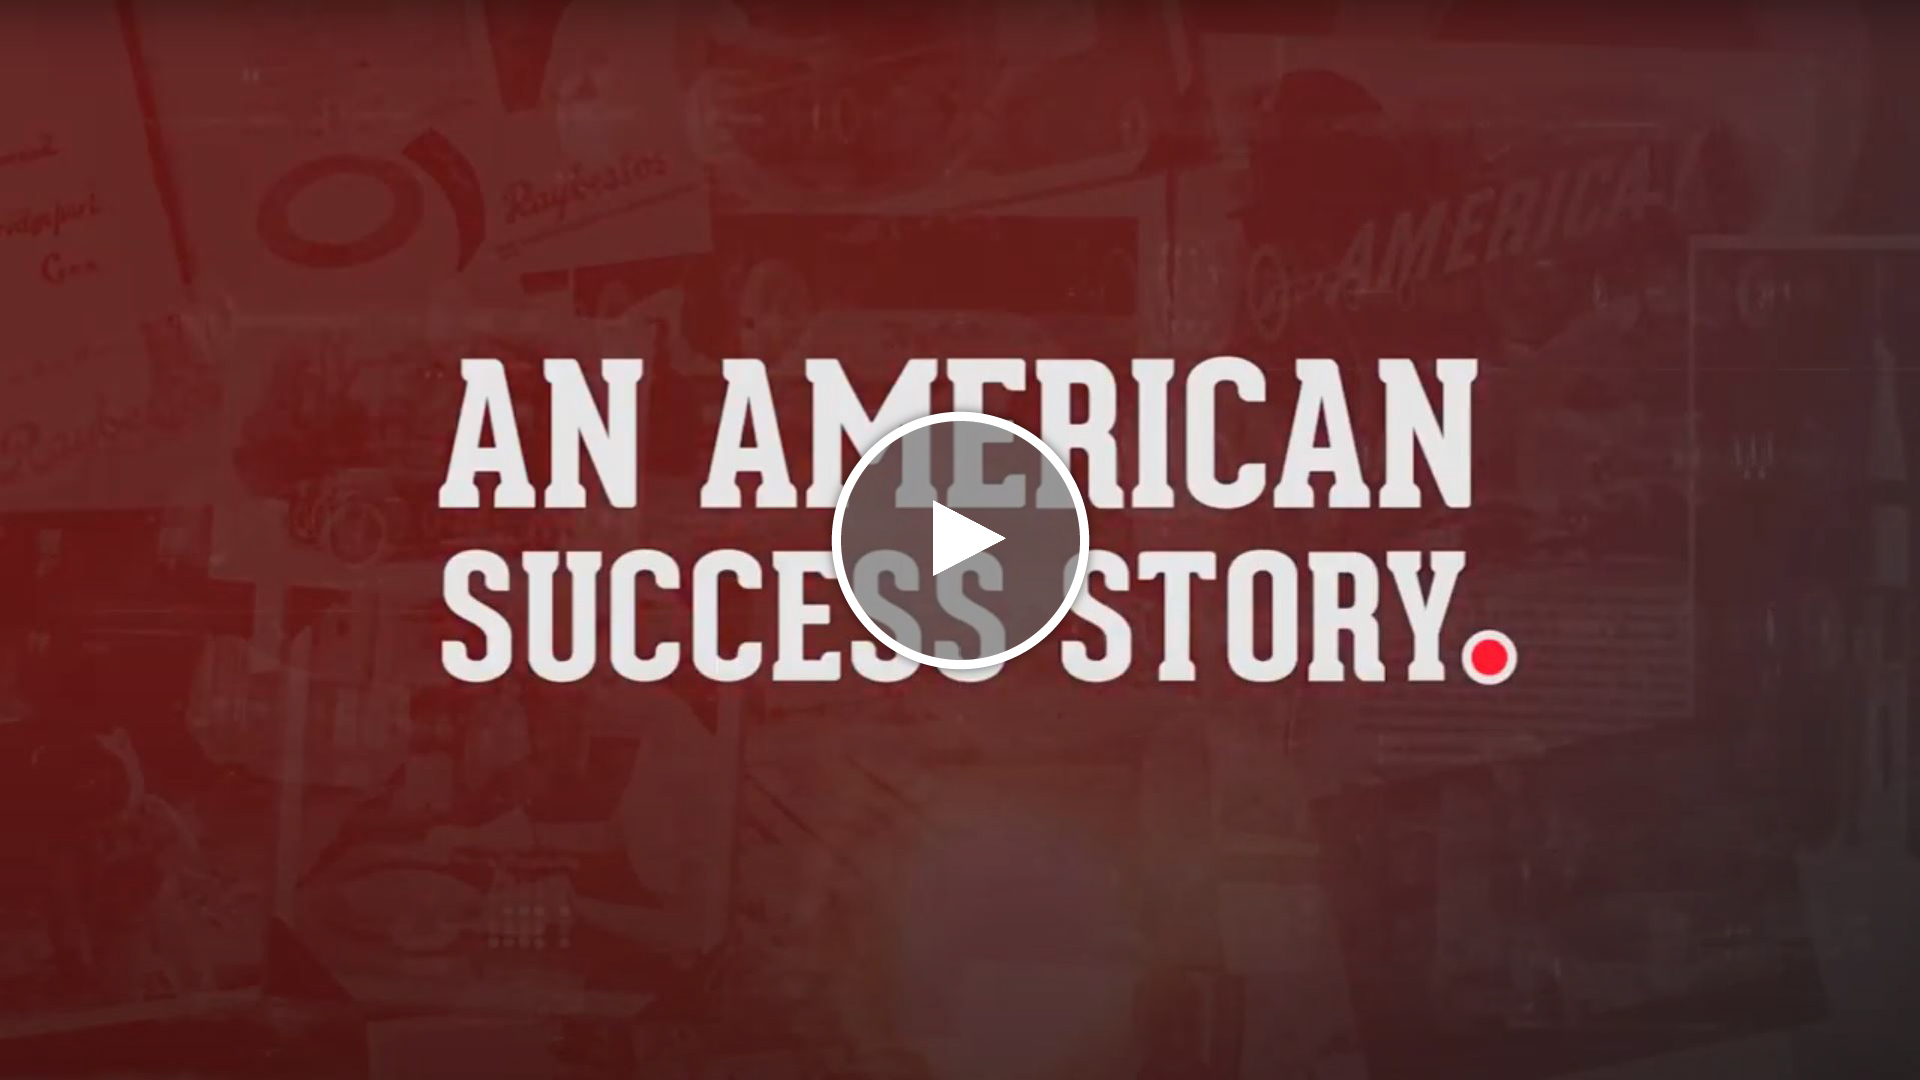 Raybestos Powertrain Timeline Video Crawfordsville, IN Motion Graphics Design by Media Wrench LLC